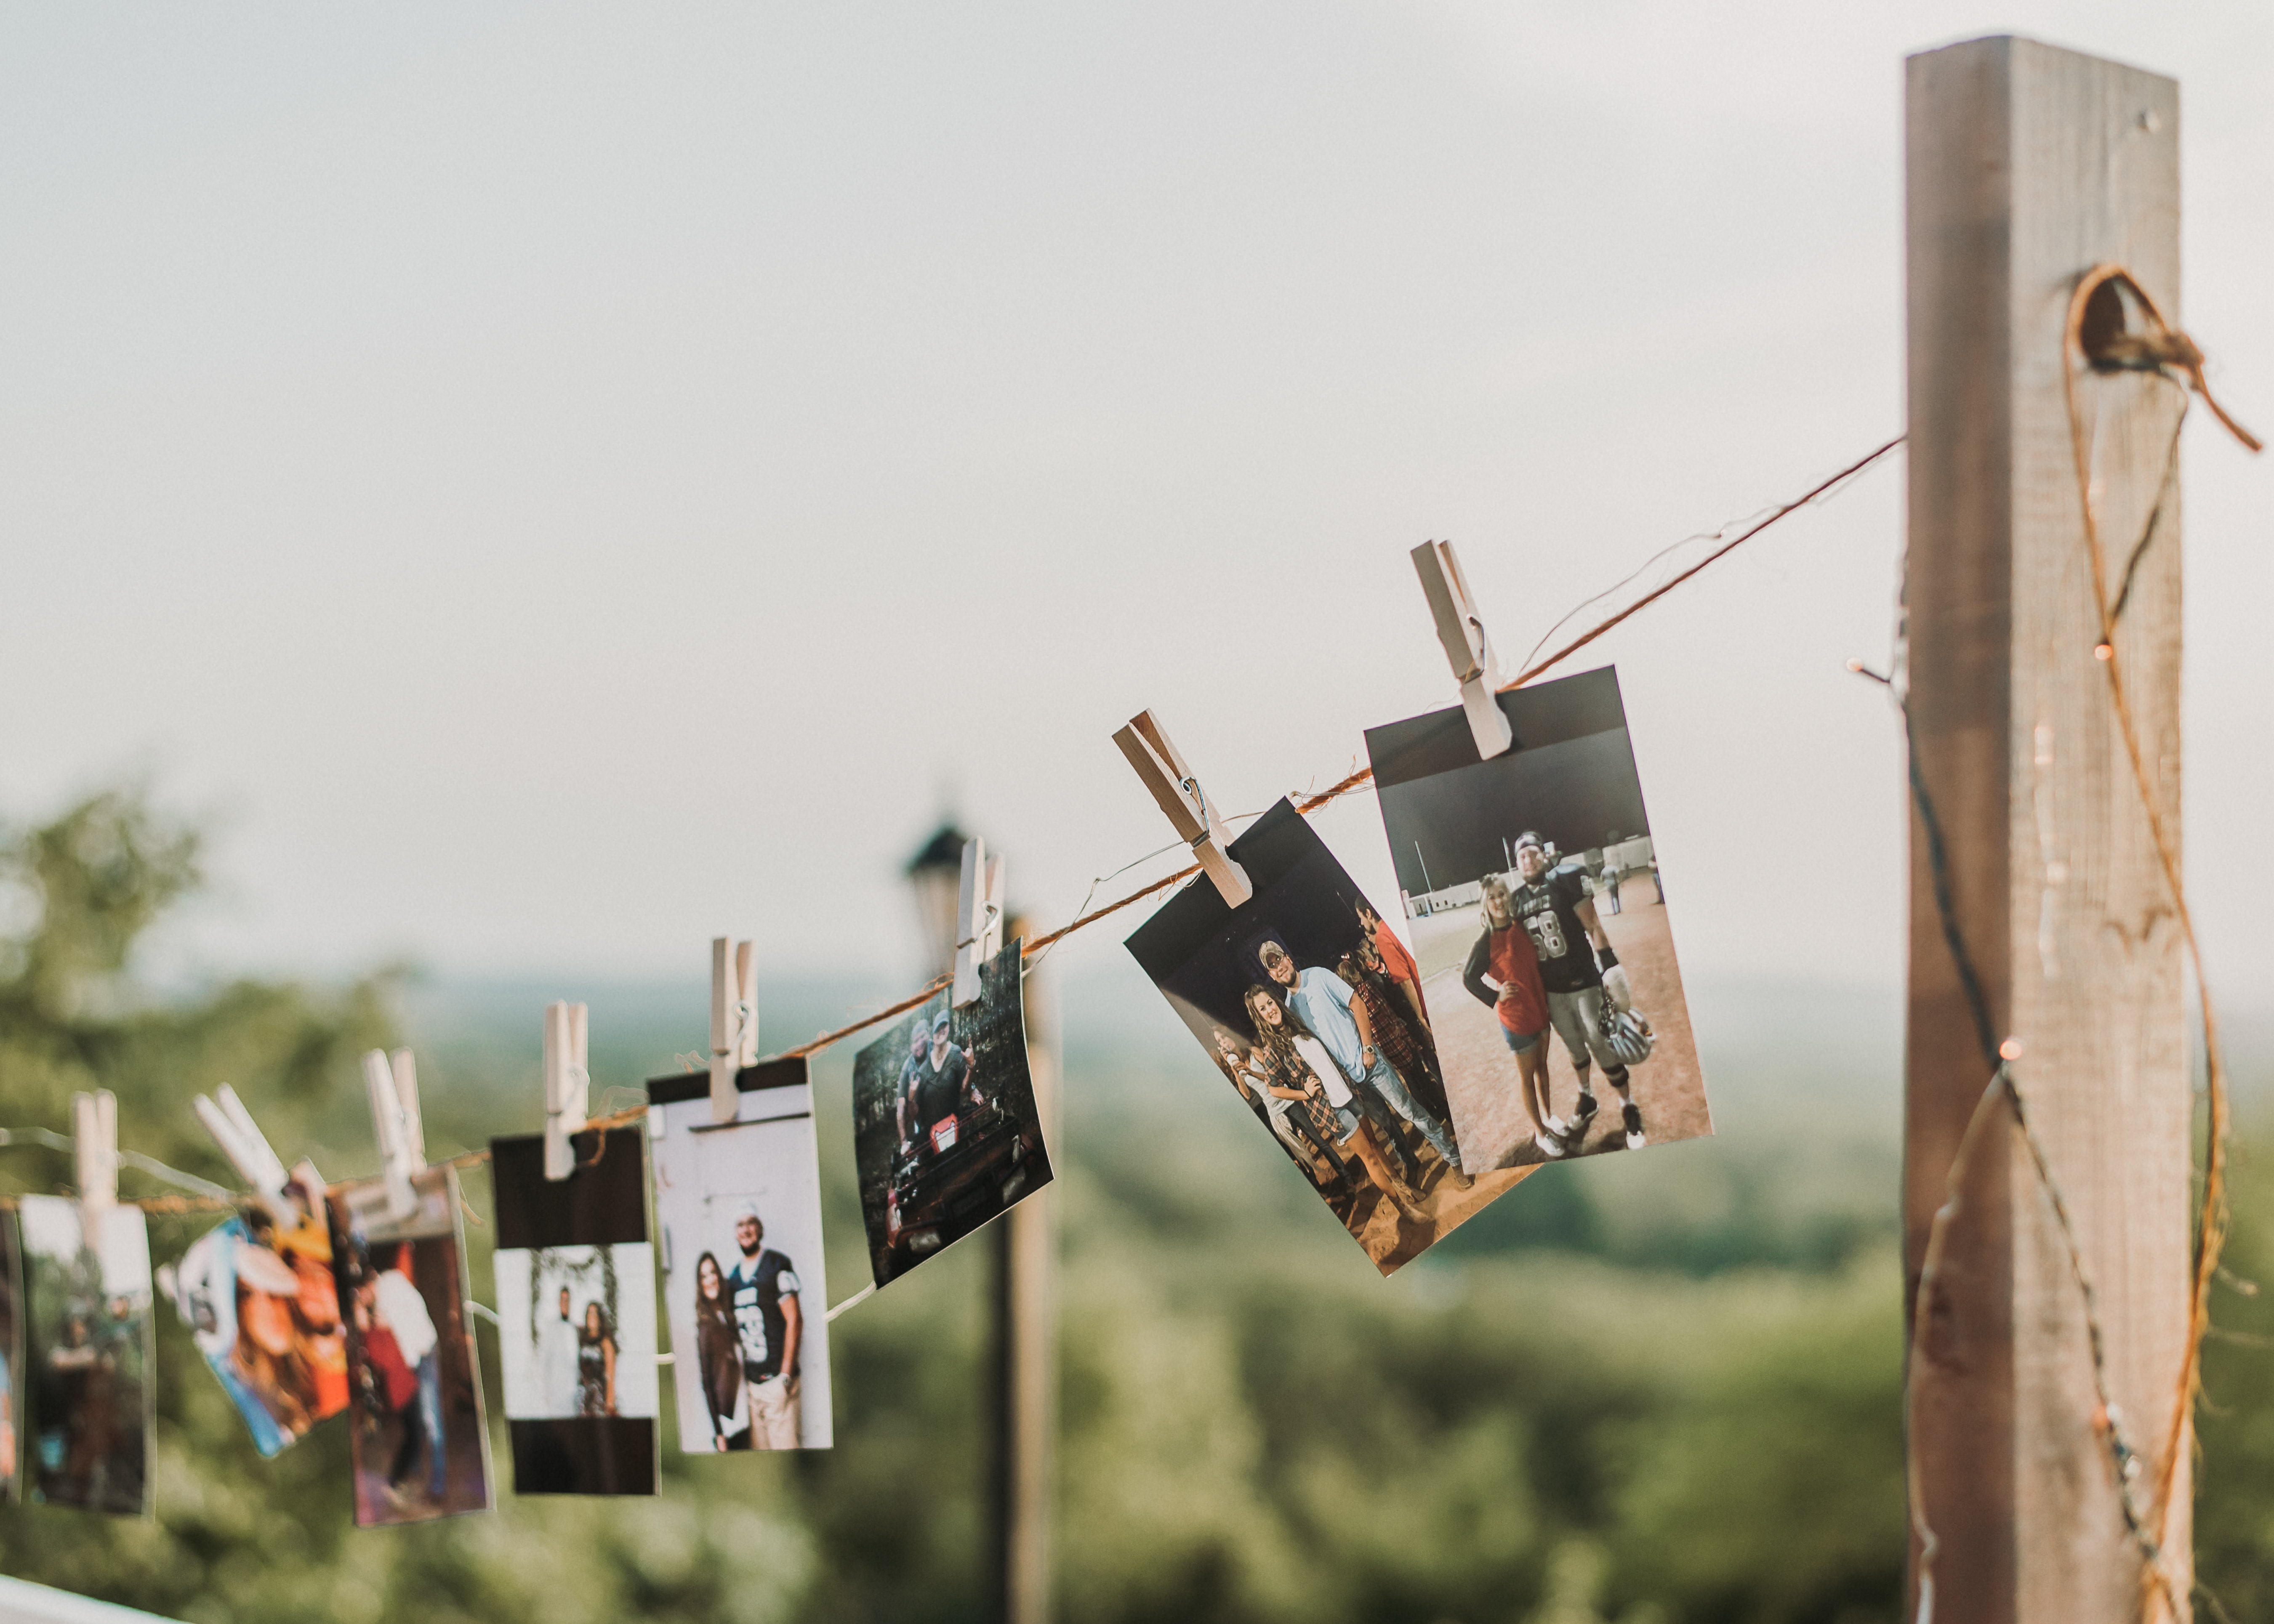 photos clipped on clothesline